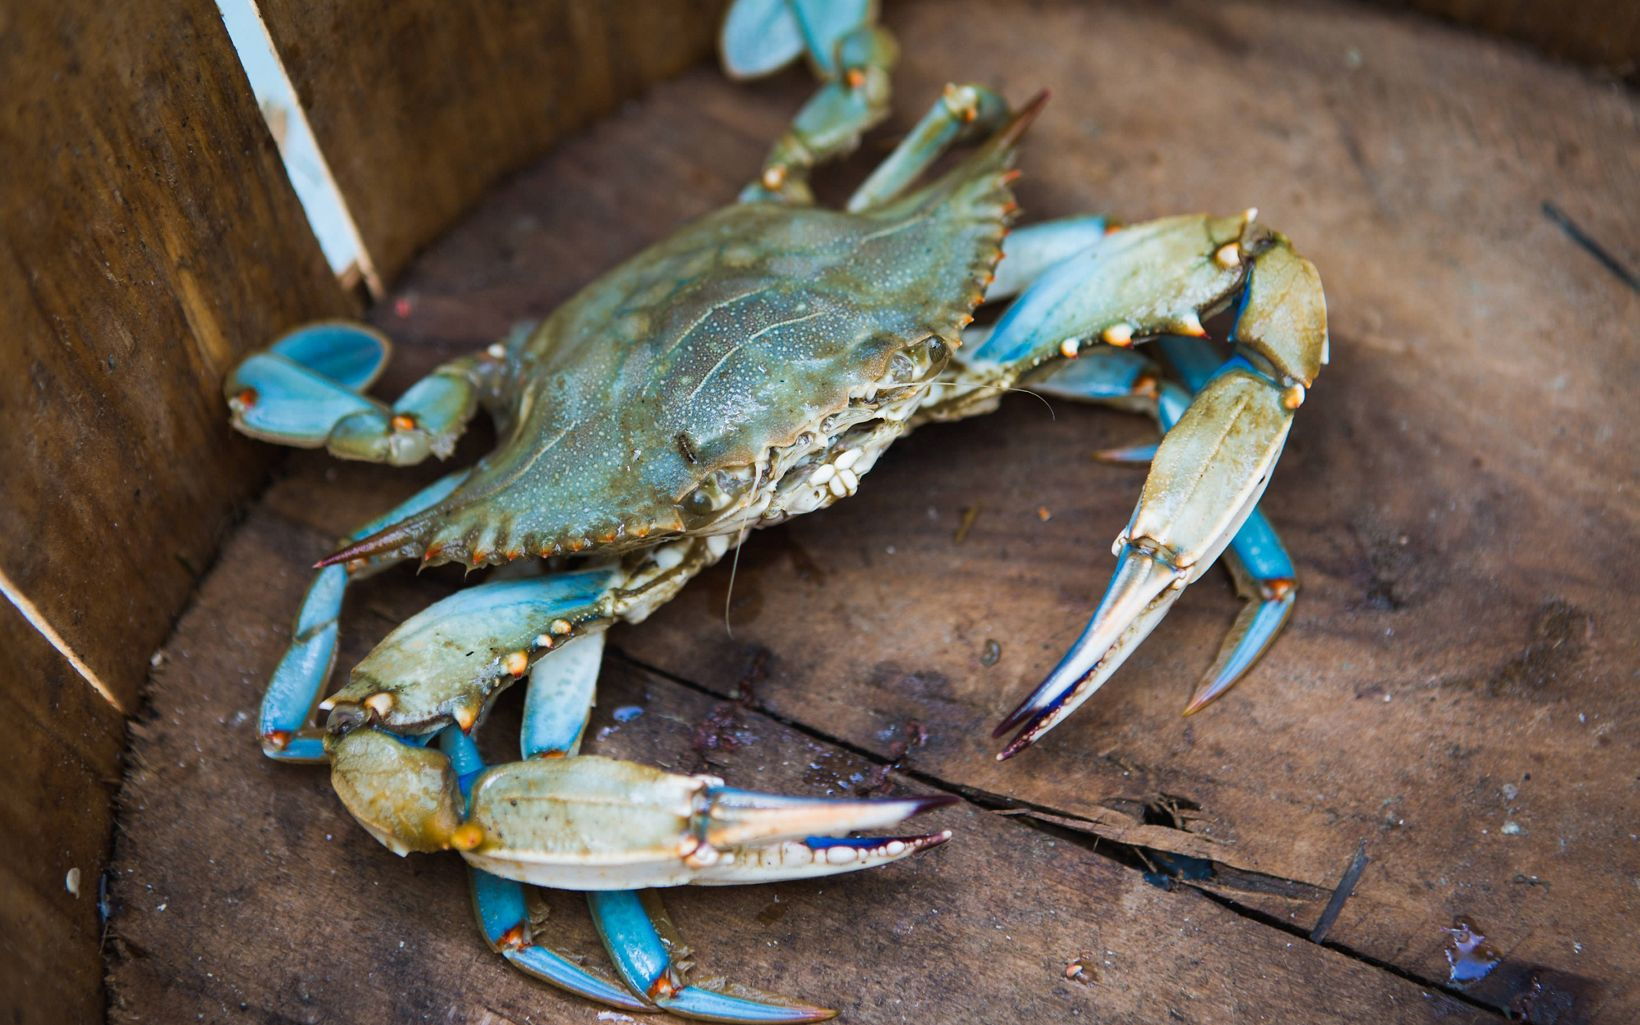 A lone blue crab sits at the bottom of a wood bucket.